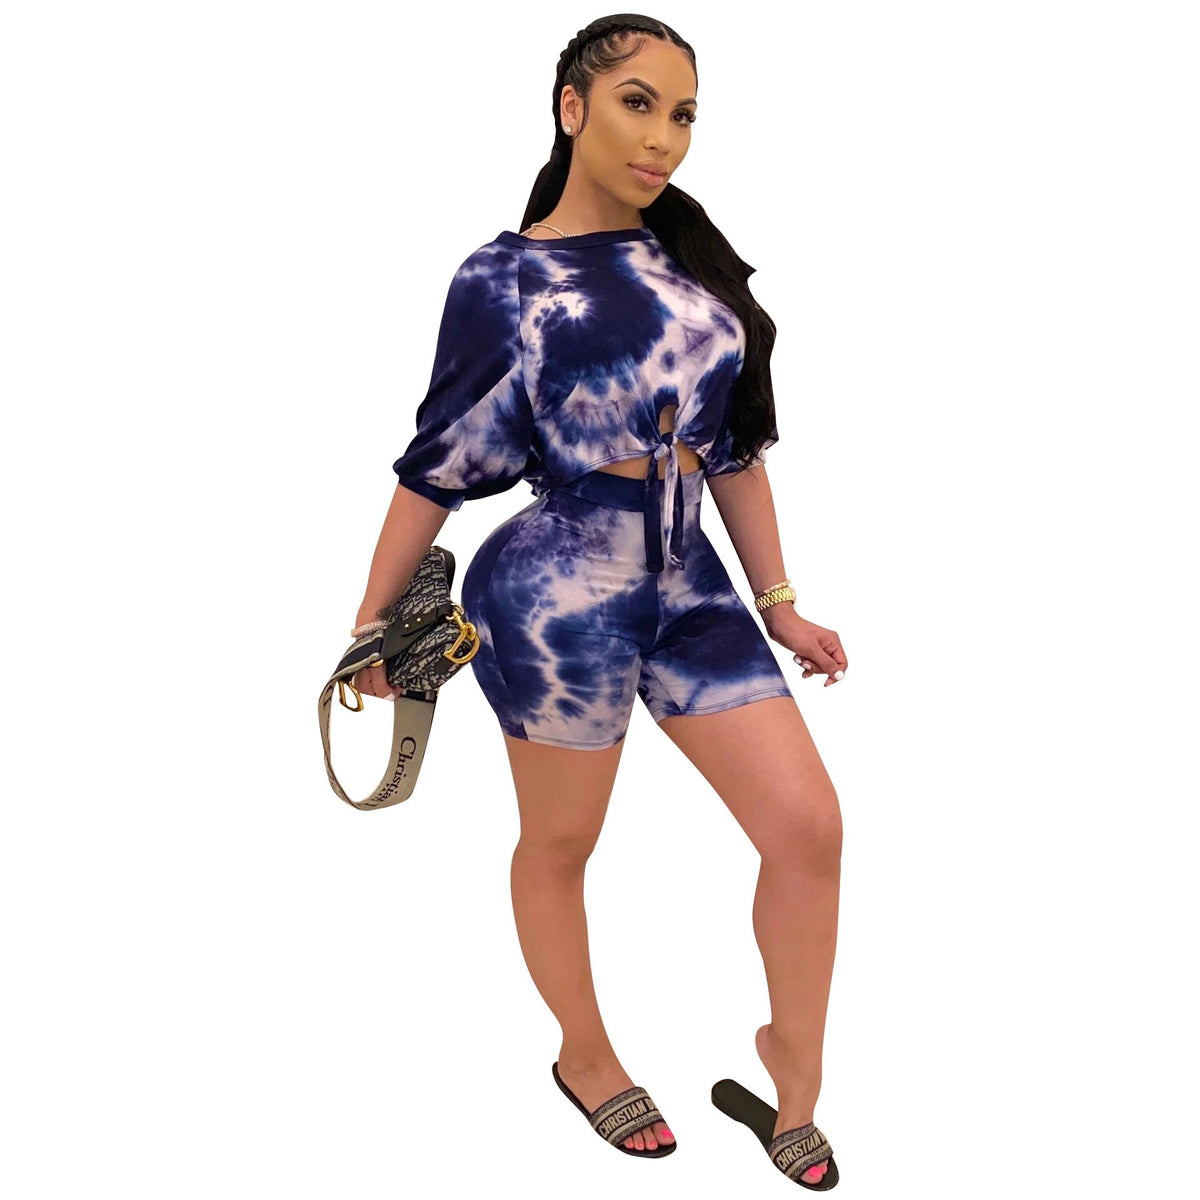 2020 Summer Women Two Pieces Set Tracksuits Half Sleeve O-Neck Tops+Shorts Suits Sexy Night Joggers Print Sporty Outfits GL737